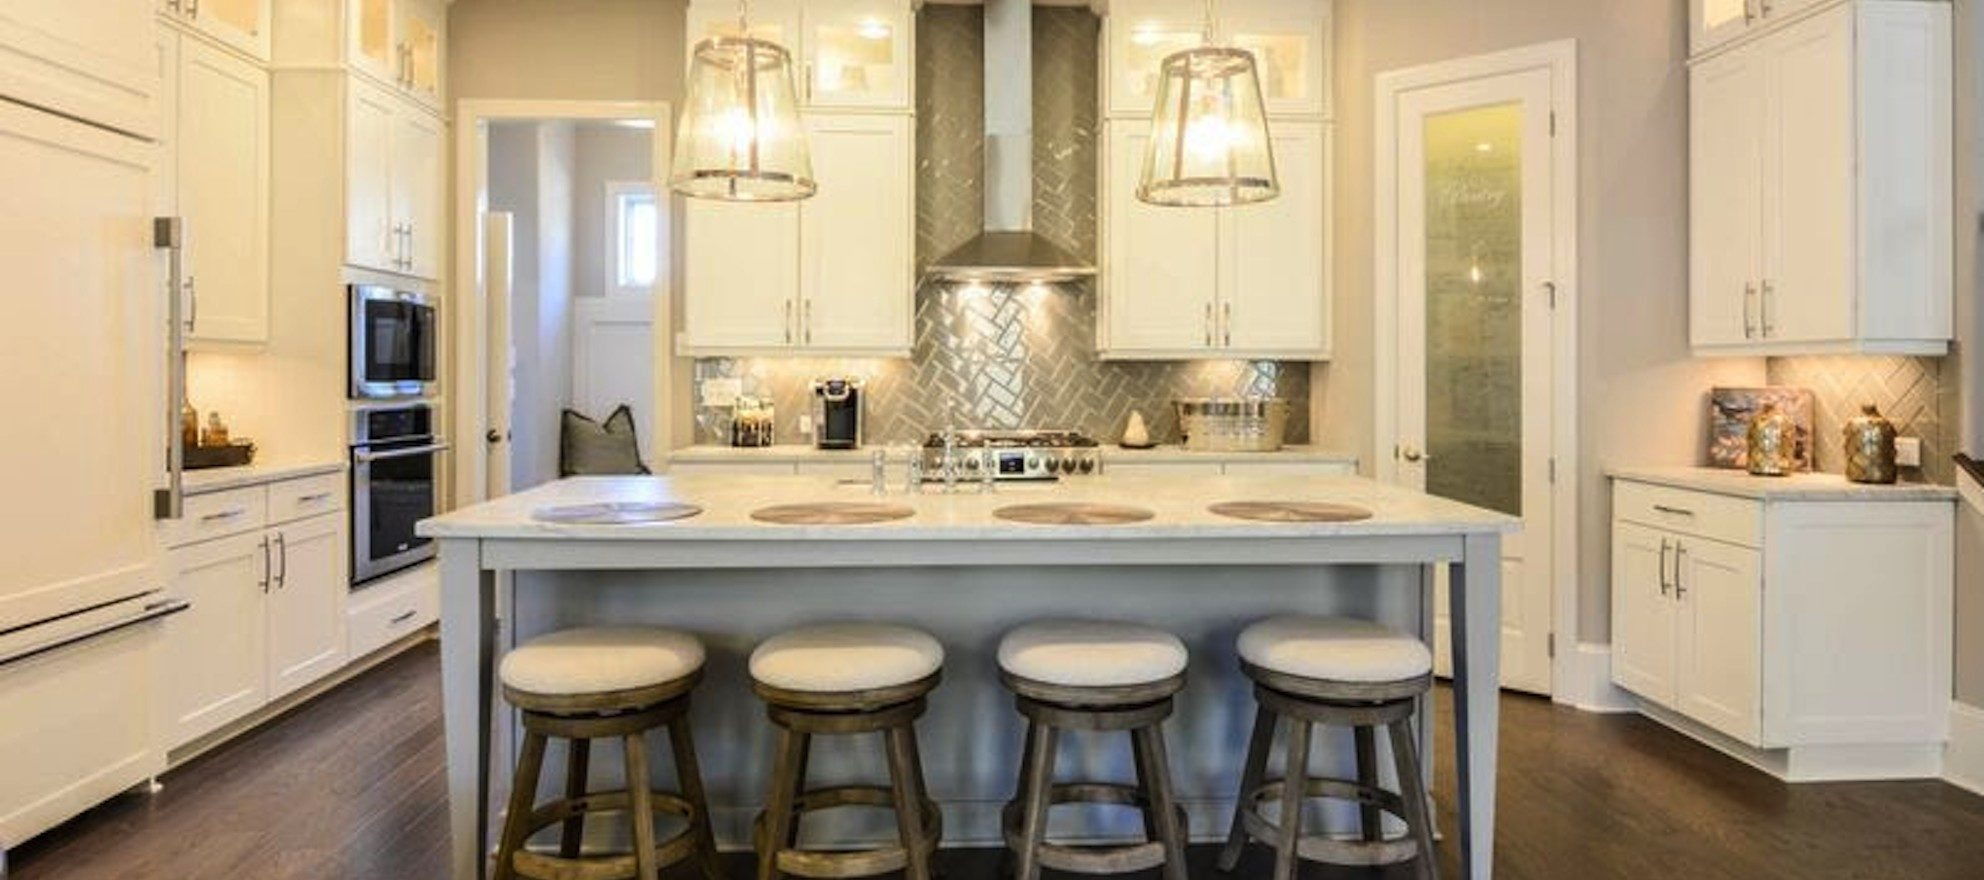 3 D Home Of The Day Enclave At Wills Park